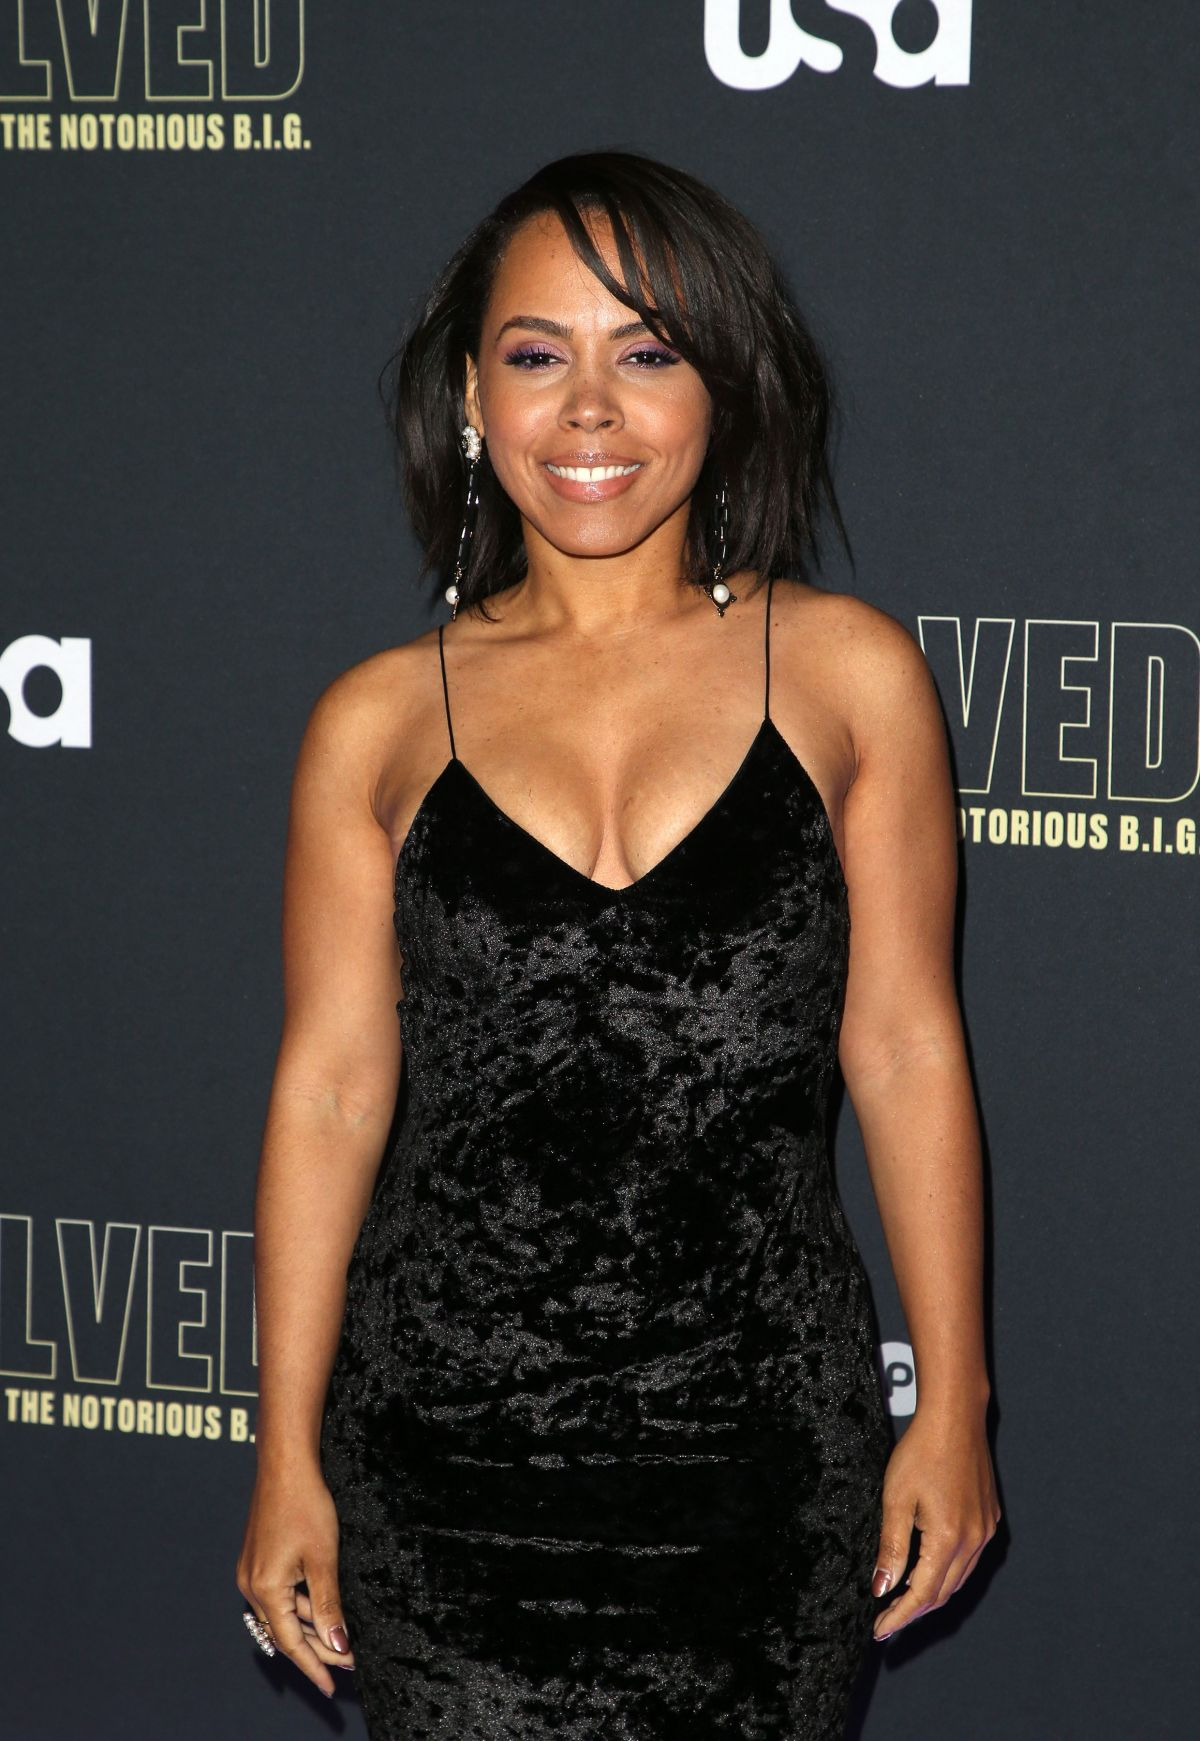 Fappening Amirah Vann naked photo 2017